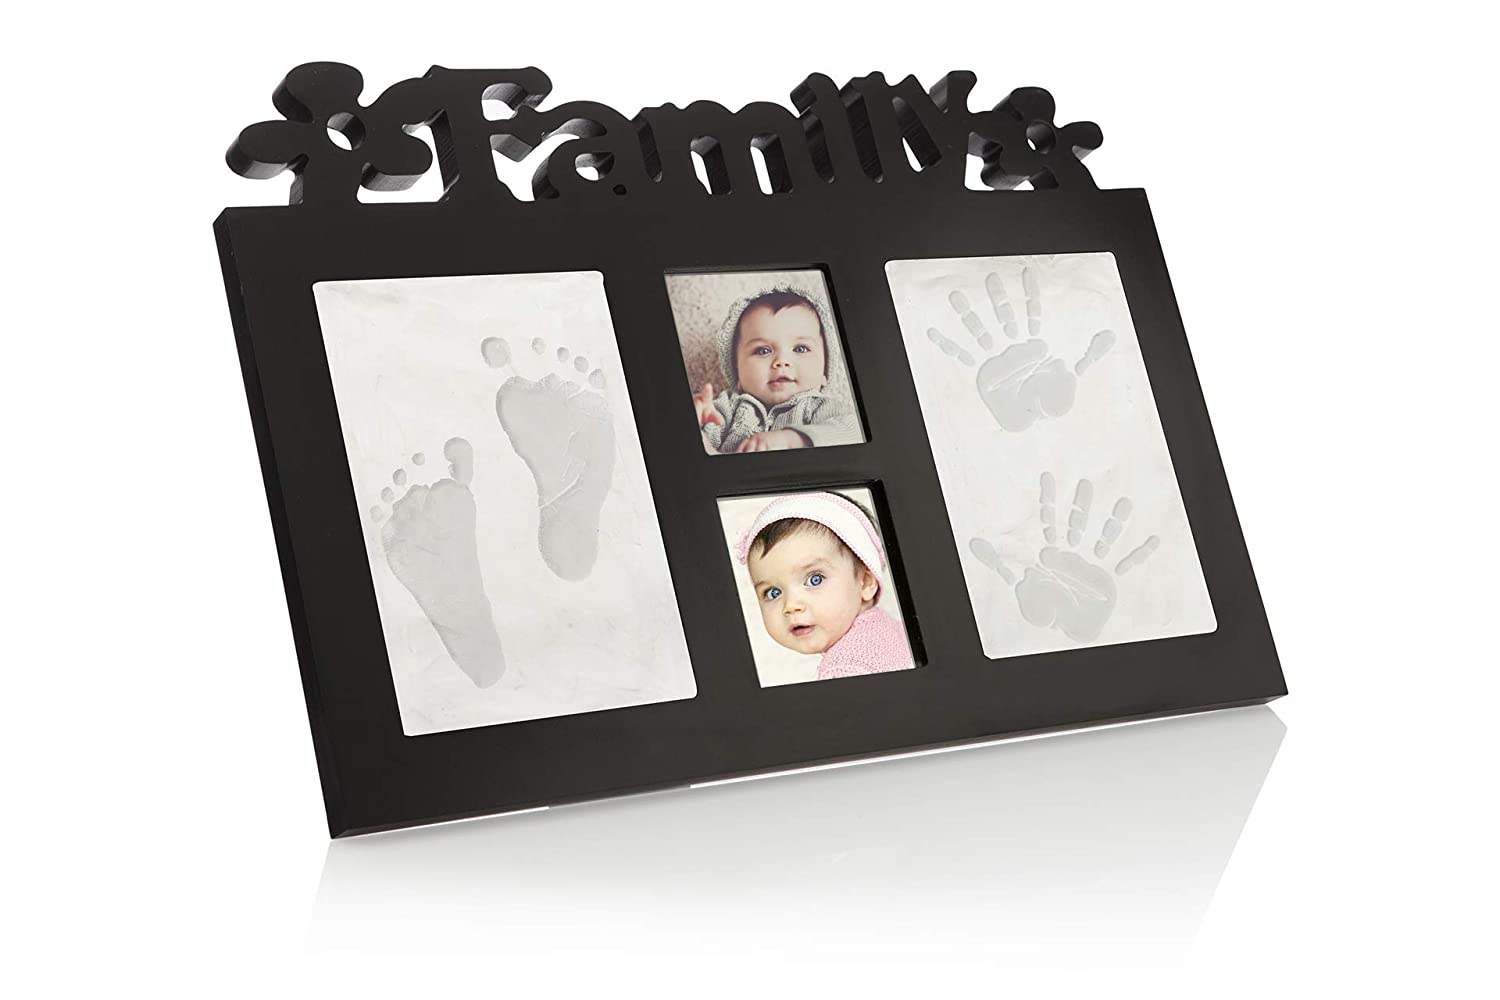 Baby Handprint & Footprint Kit Frame,Gift for Baby Boy & Girl, Keepsake for Newborn